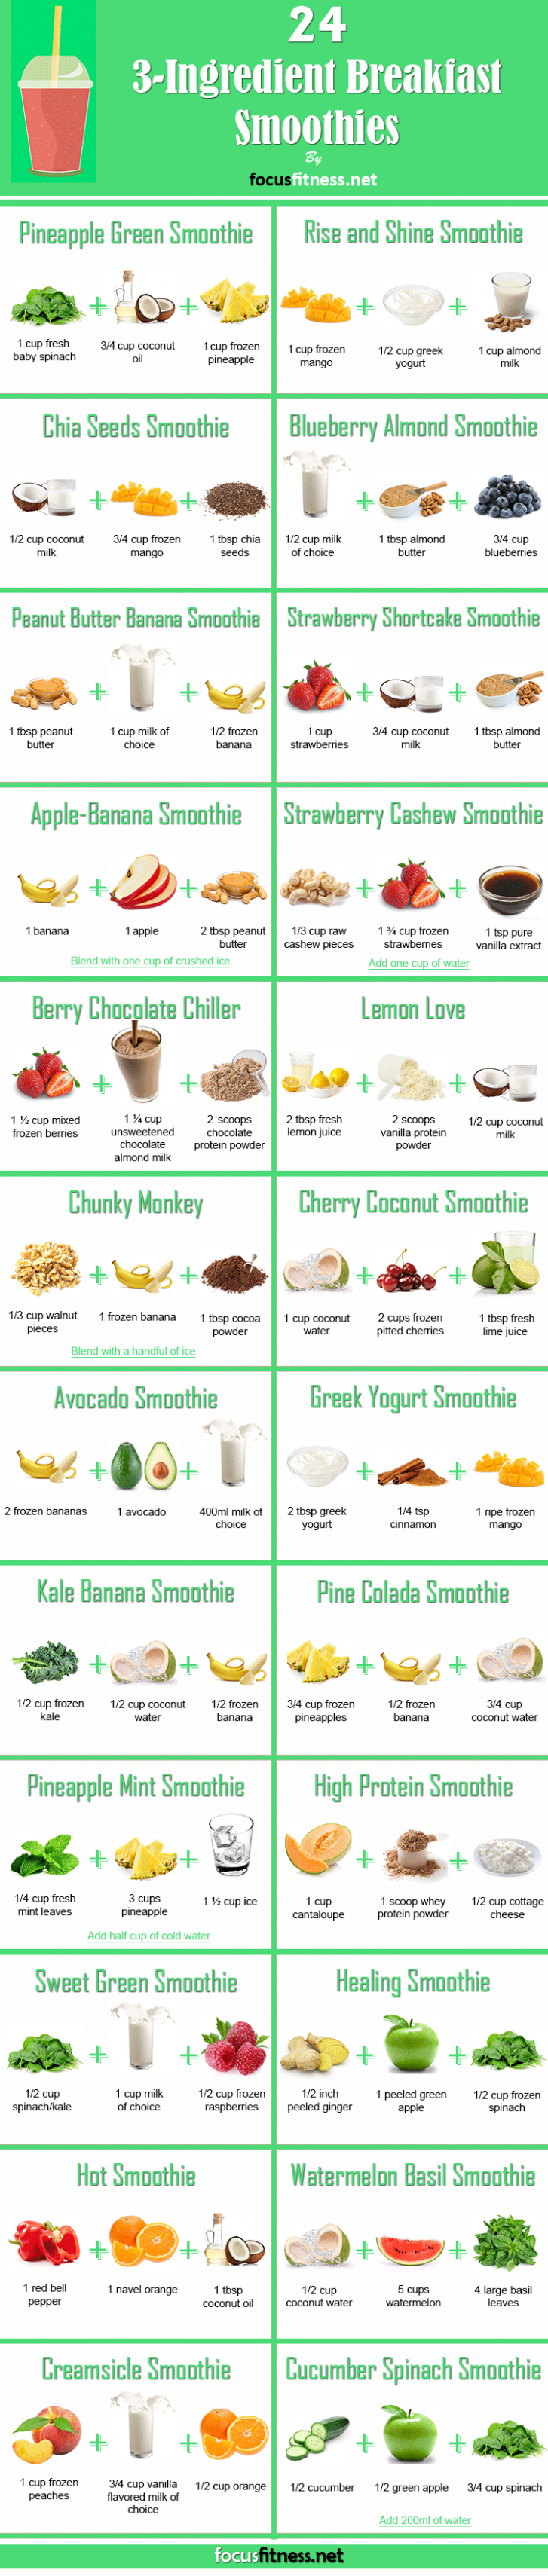 9+ Weight Loss Smoothies To Make You Slim Down In A Flash - The ...